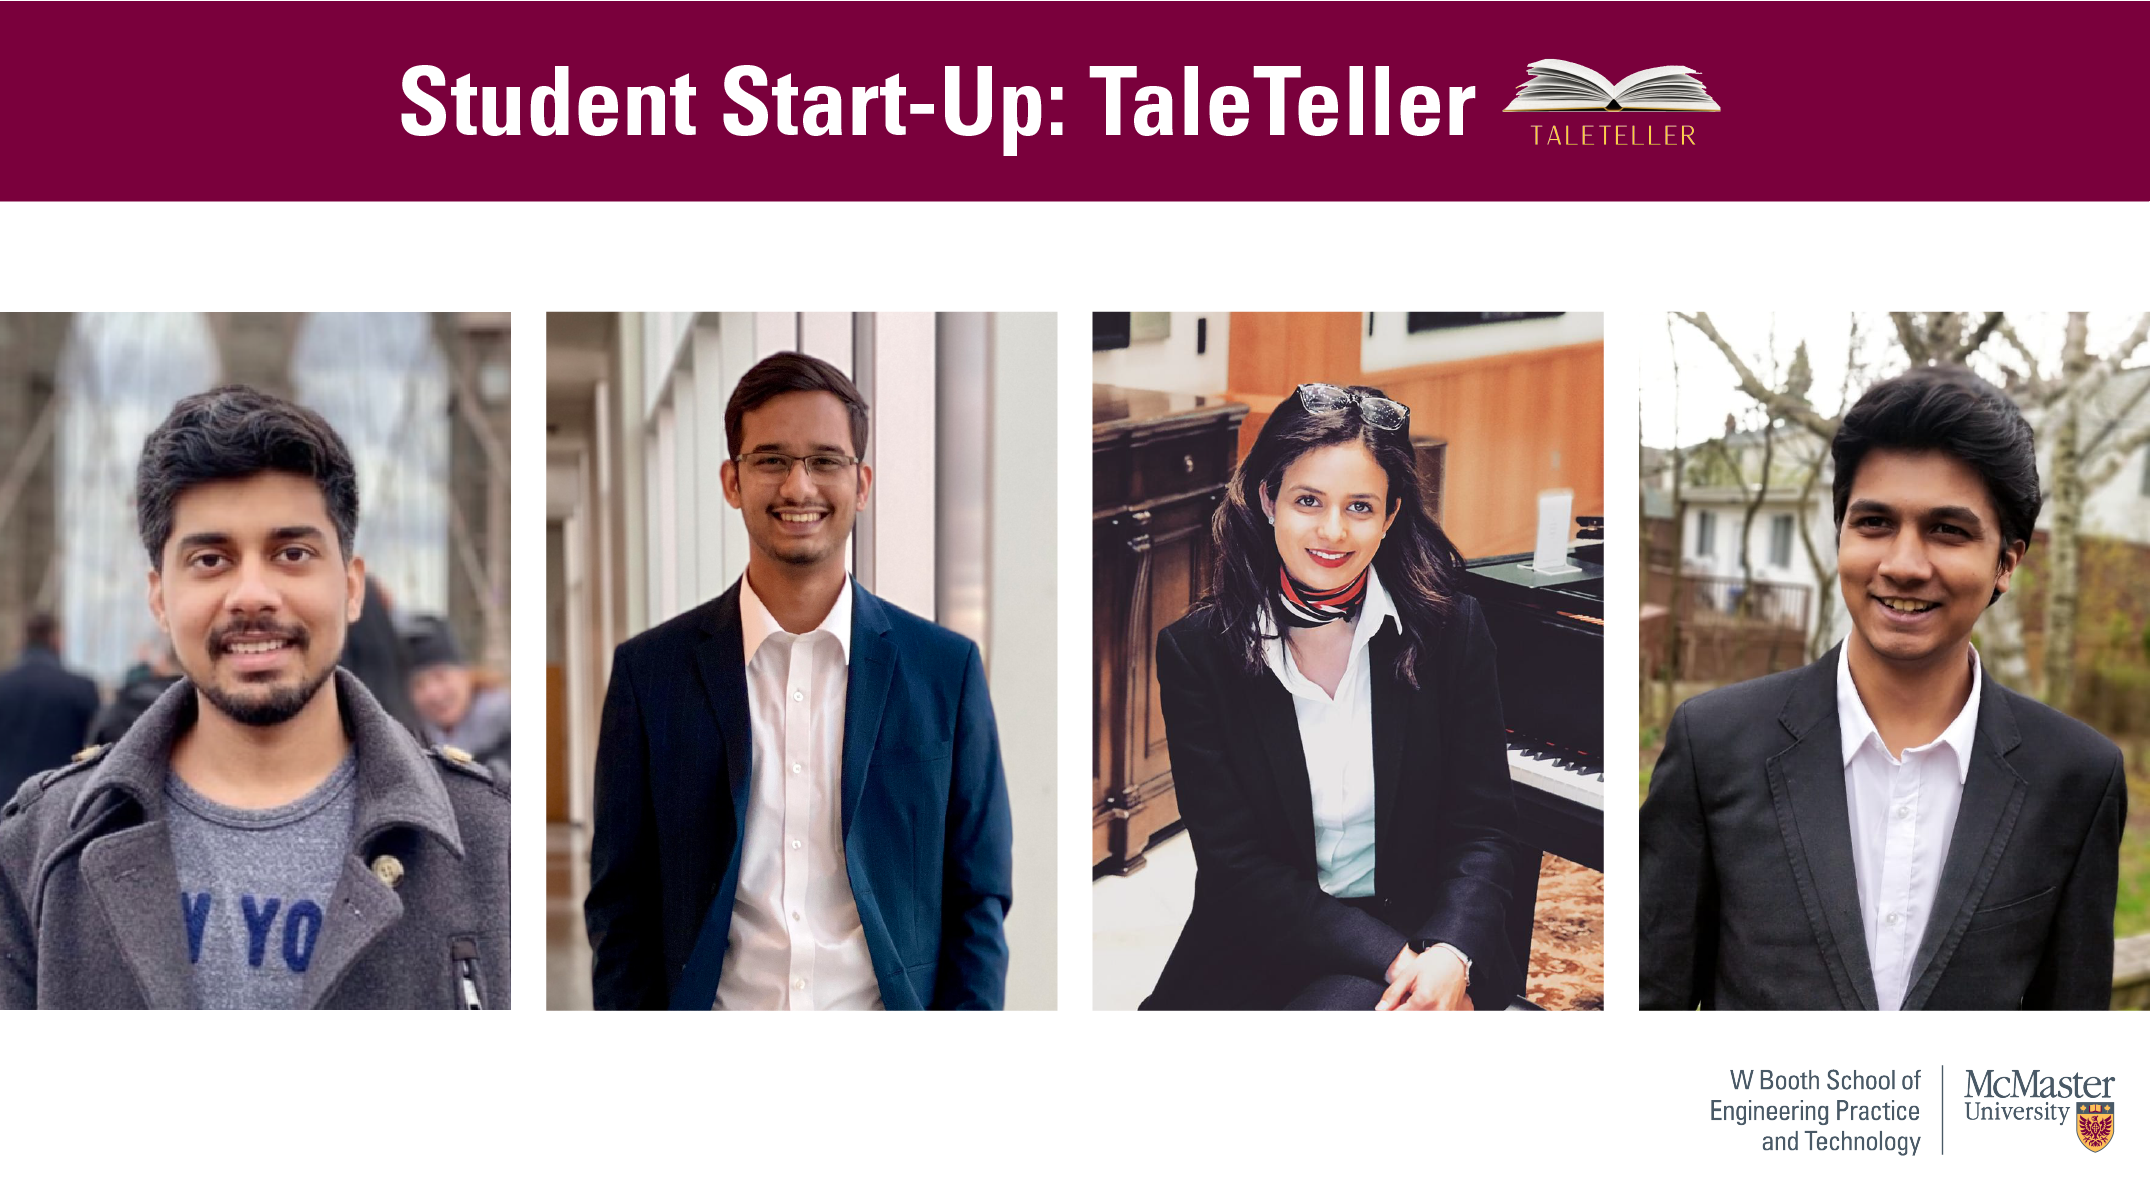 Student startup TaleTeller aims to connect families through their stories